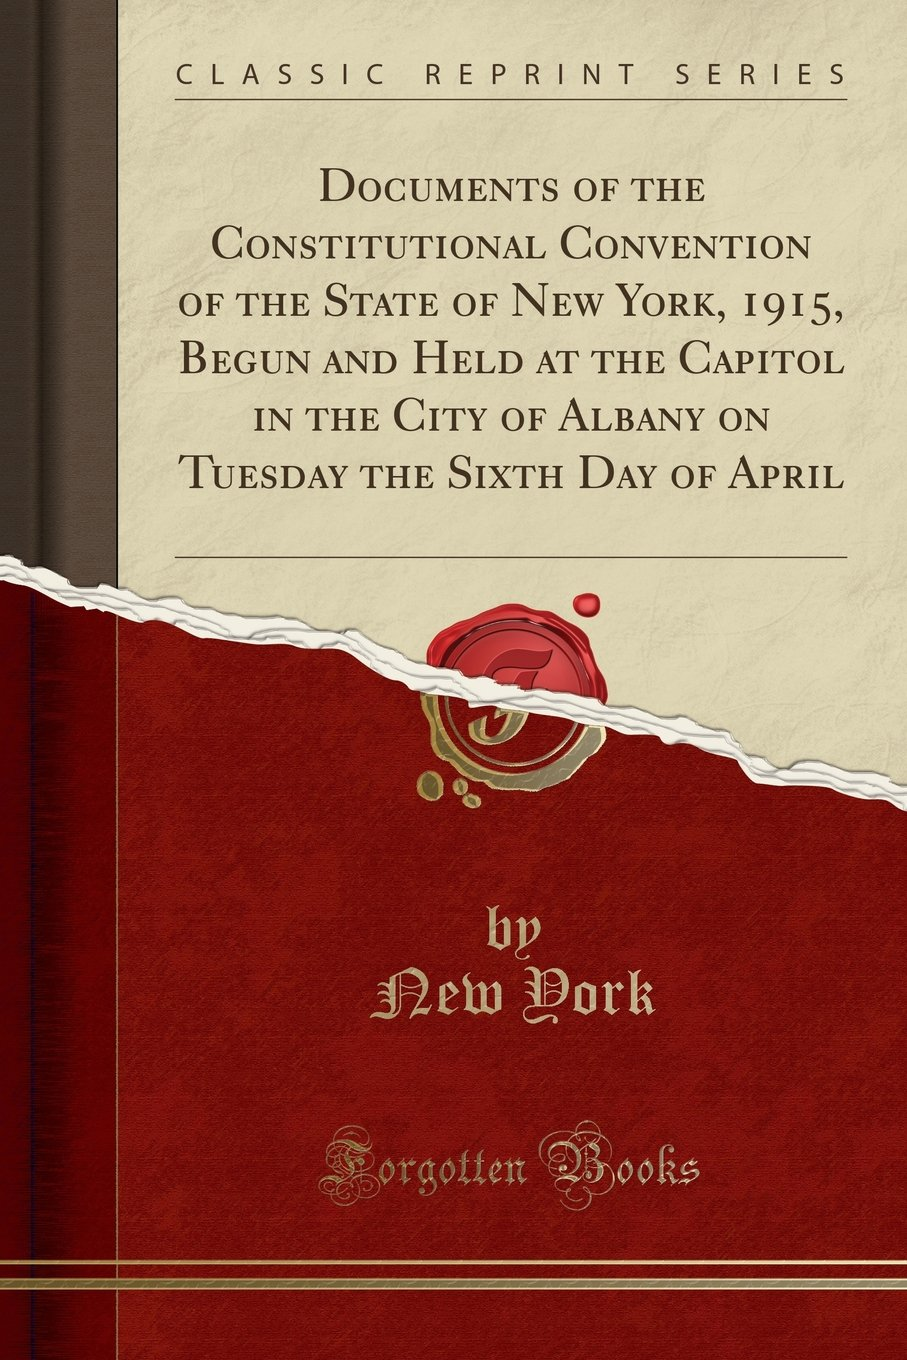 Documents of the Constitutional Convention of the State of New York, 1915, Begun and Held at the Capitol in the City of Albany on Tuesday the Sixth Day of April (Classic Reprint) pdf epub